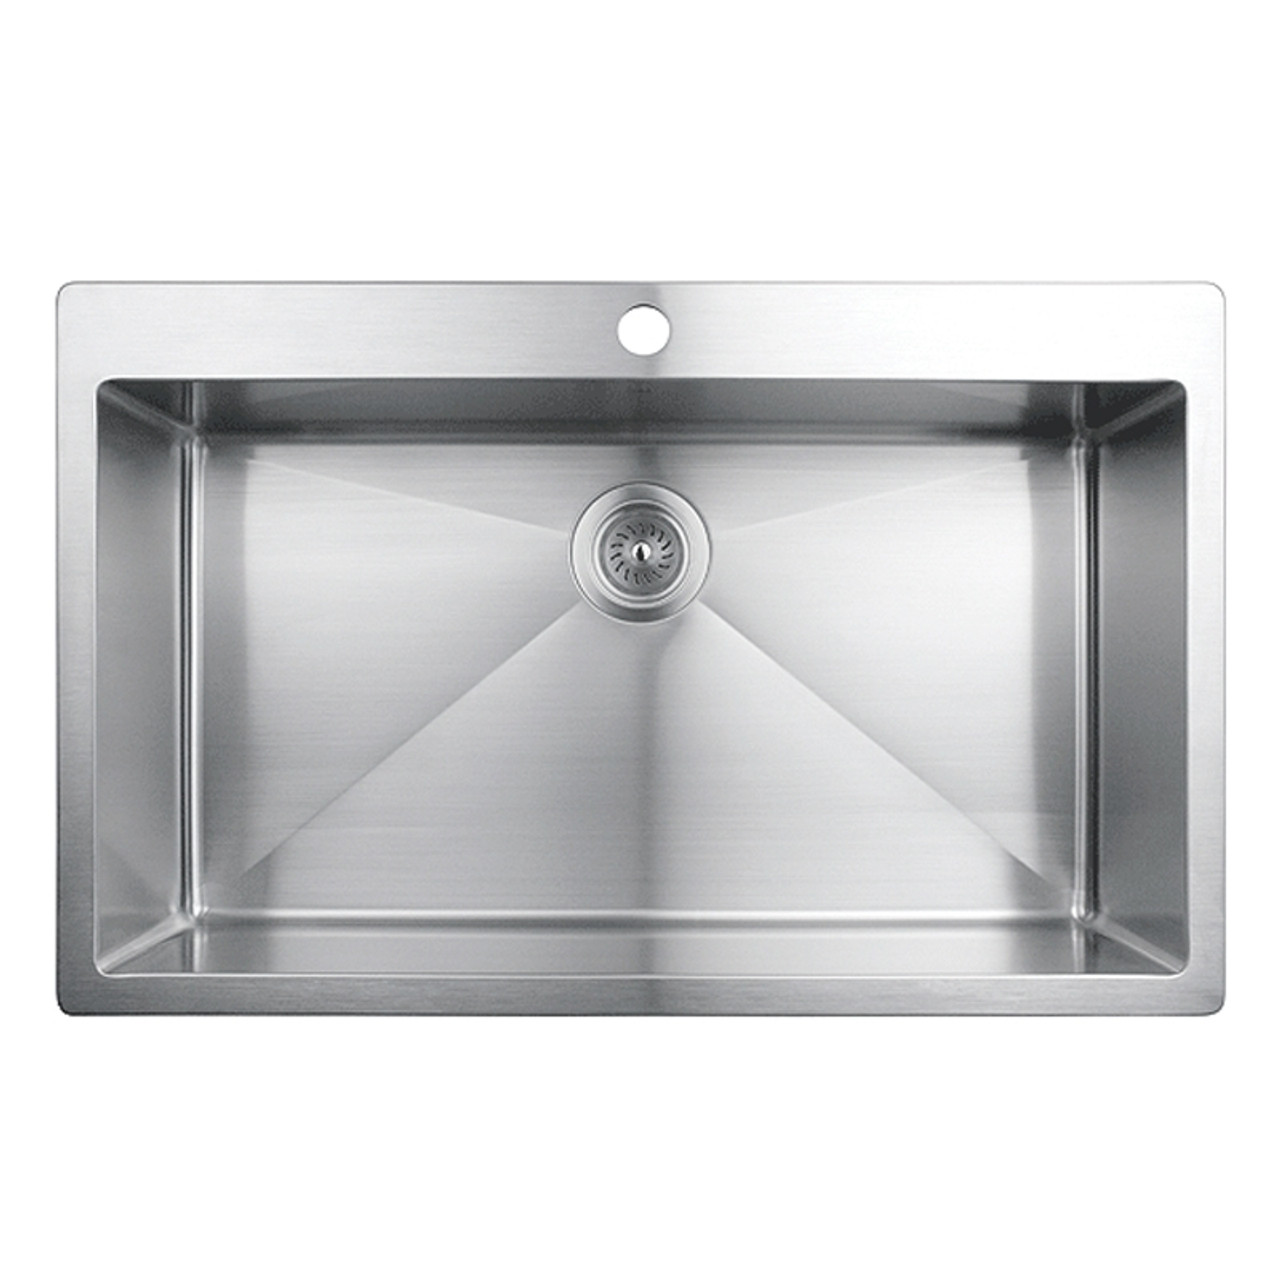 Rubi Muscat Drop In Single Bowl Kitchen Sink With Rounded Corners